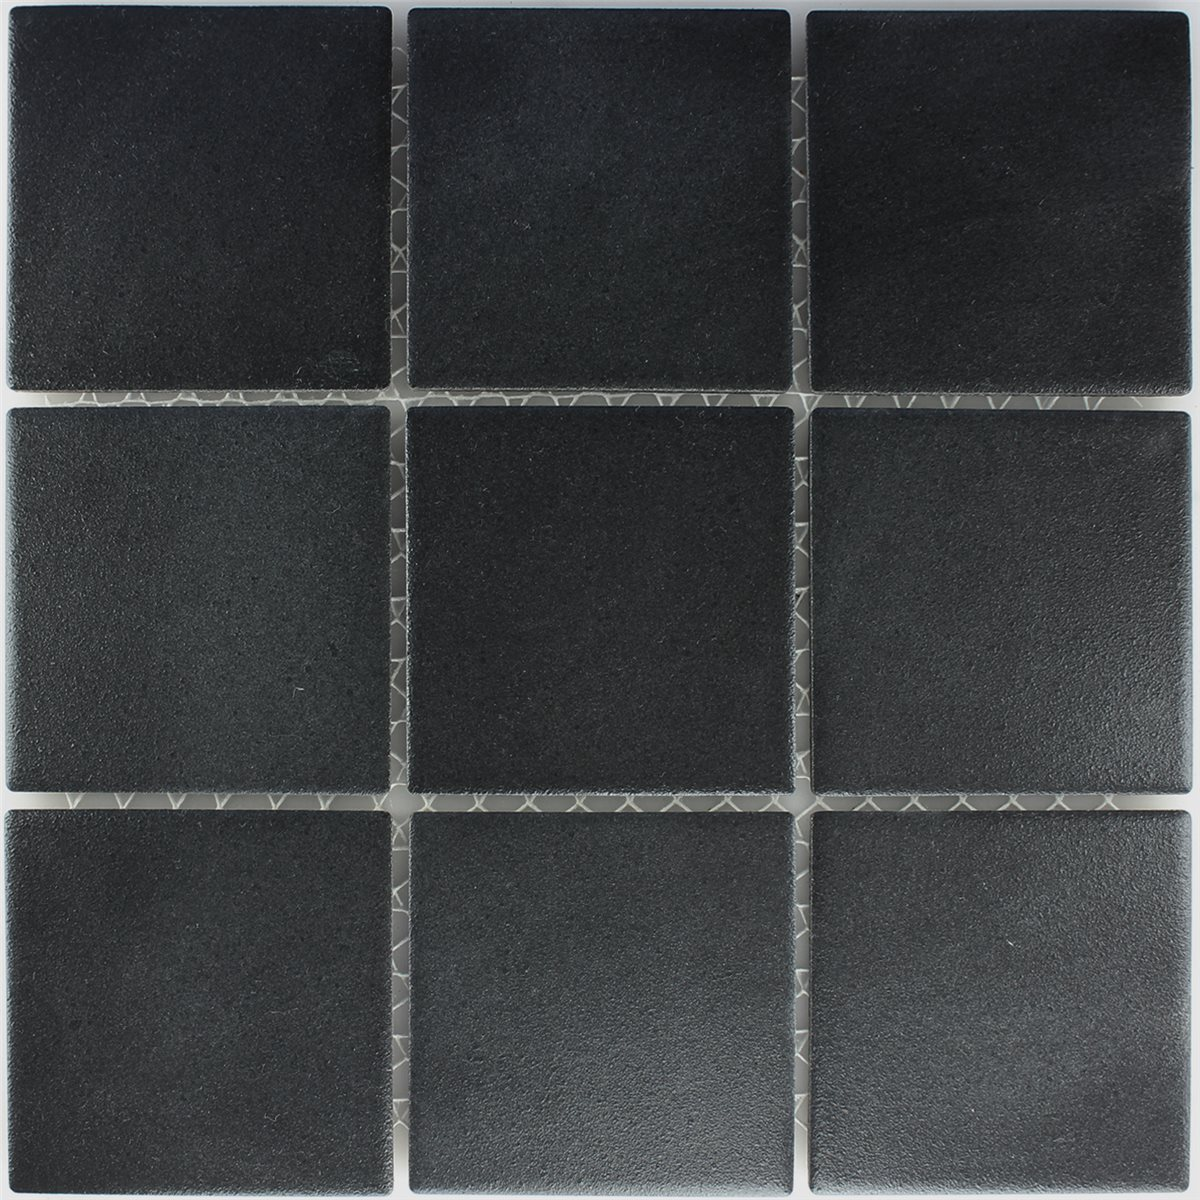 Mosaic tiles ceramic black uni non slip tm33263m mosaic tiles ceramic black uni non slip dailygadgetfo Images